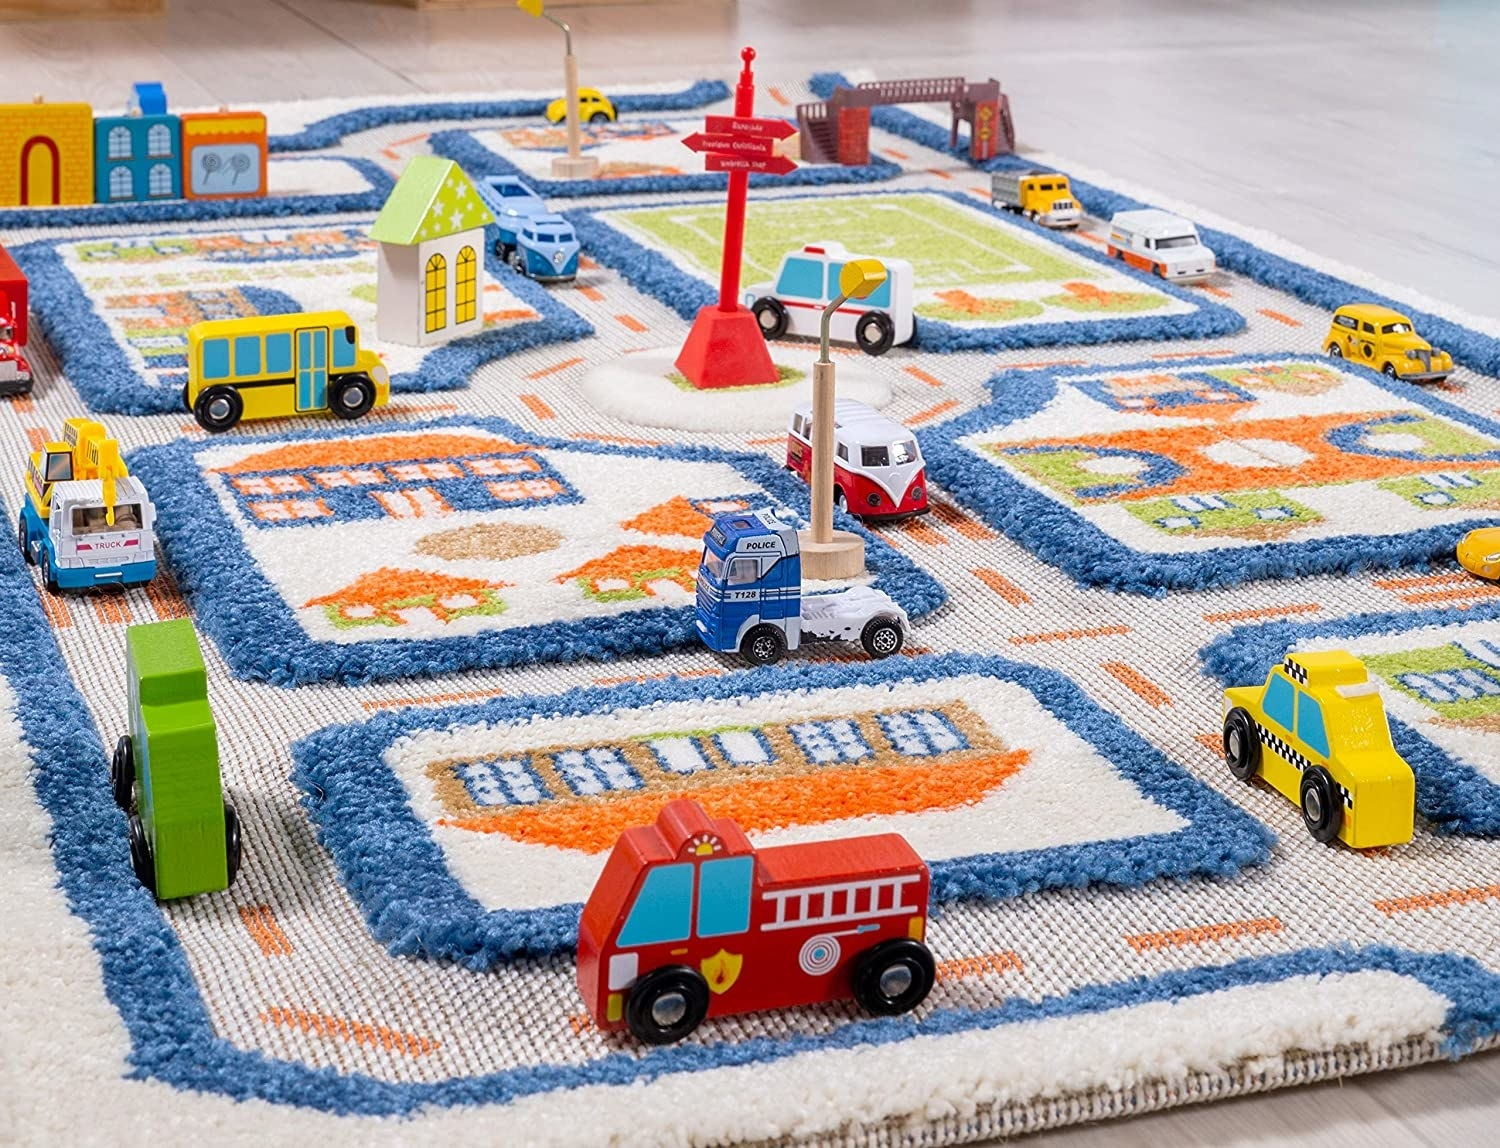 Colorful carpet that looks like a town with toy cars on streets